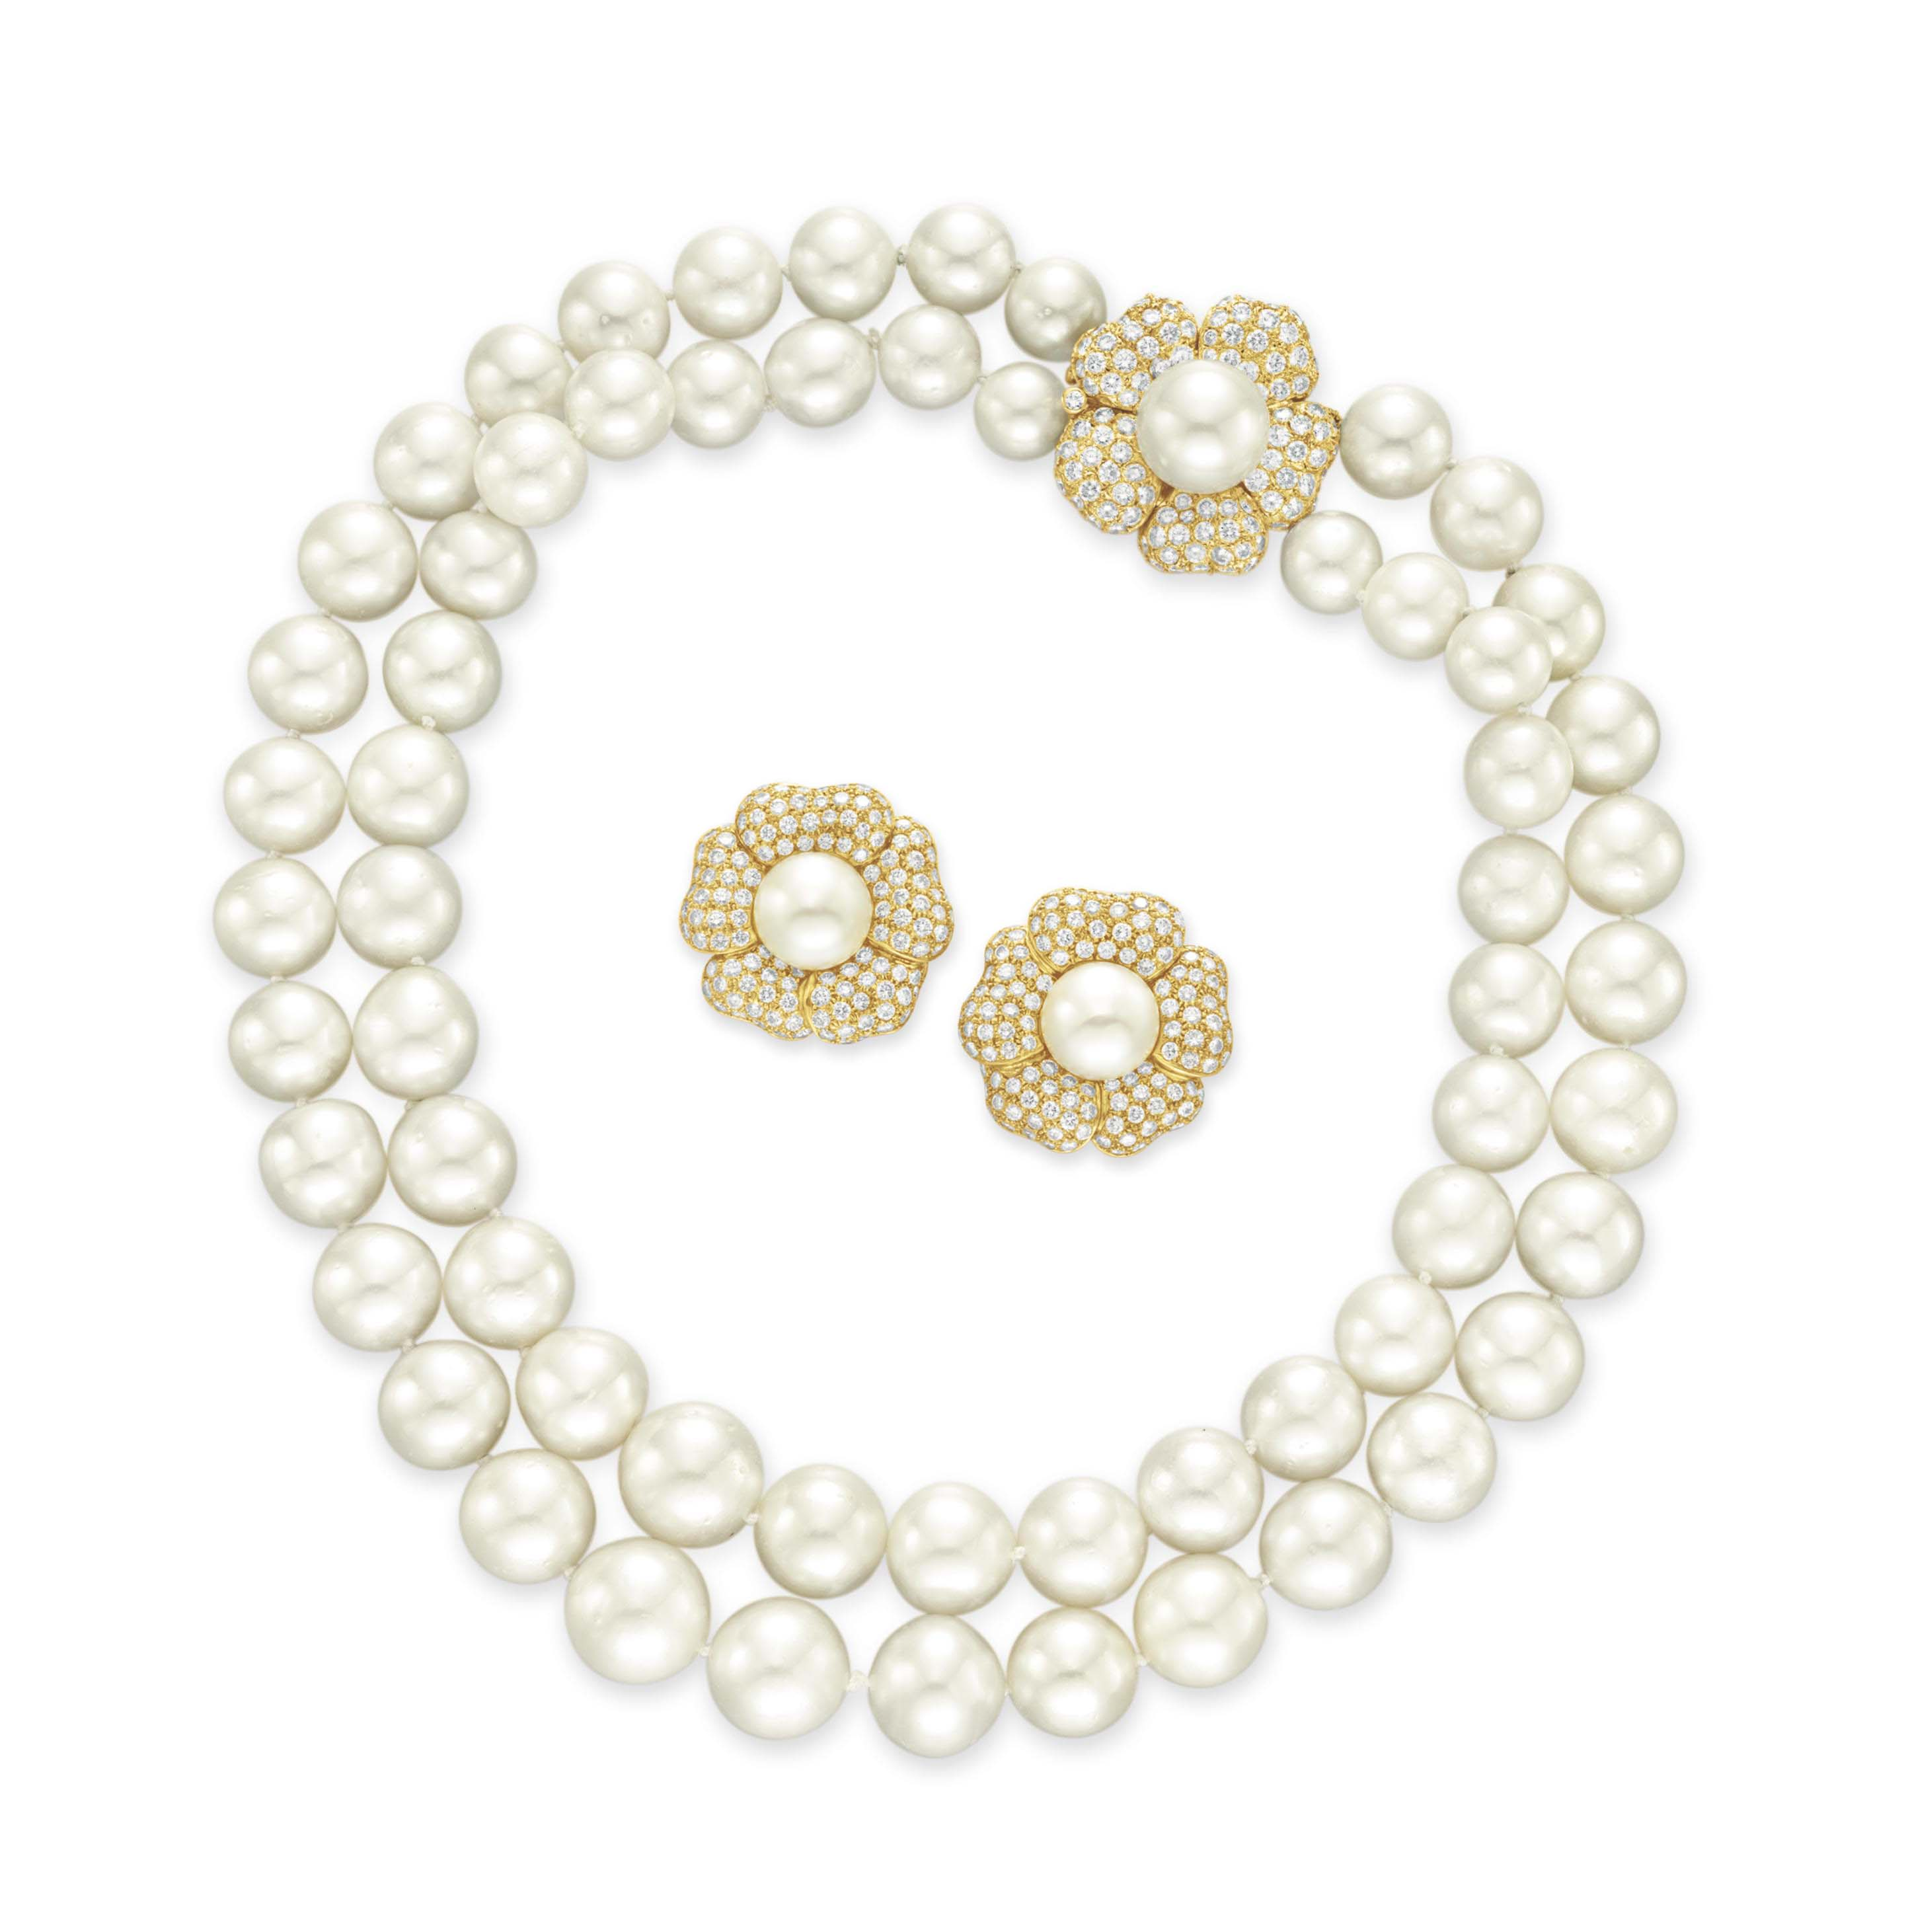 A SET OF CULTURED PEARL AND DIAMOND JEWELRY, BY TRIO